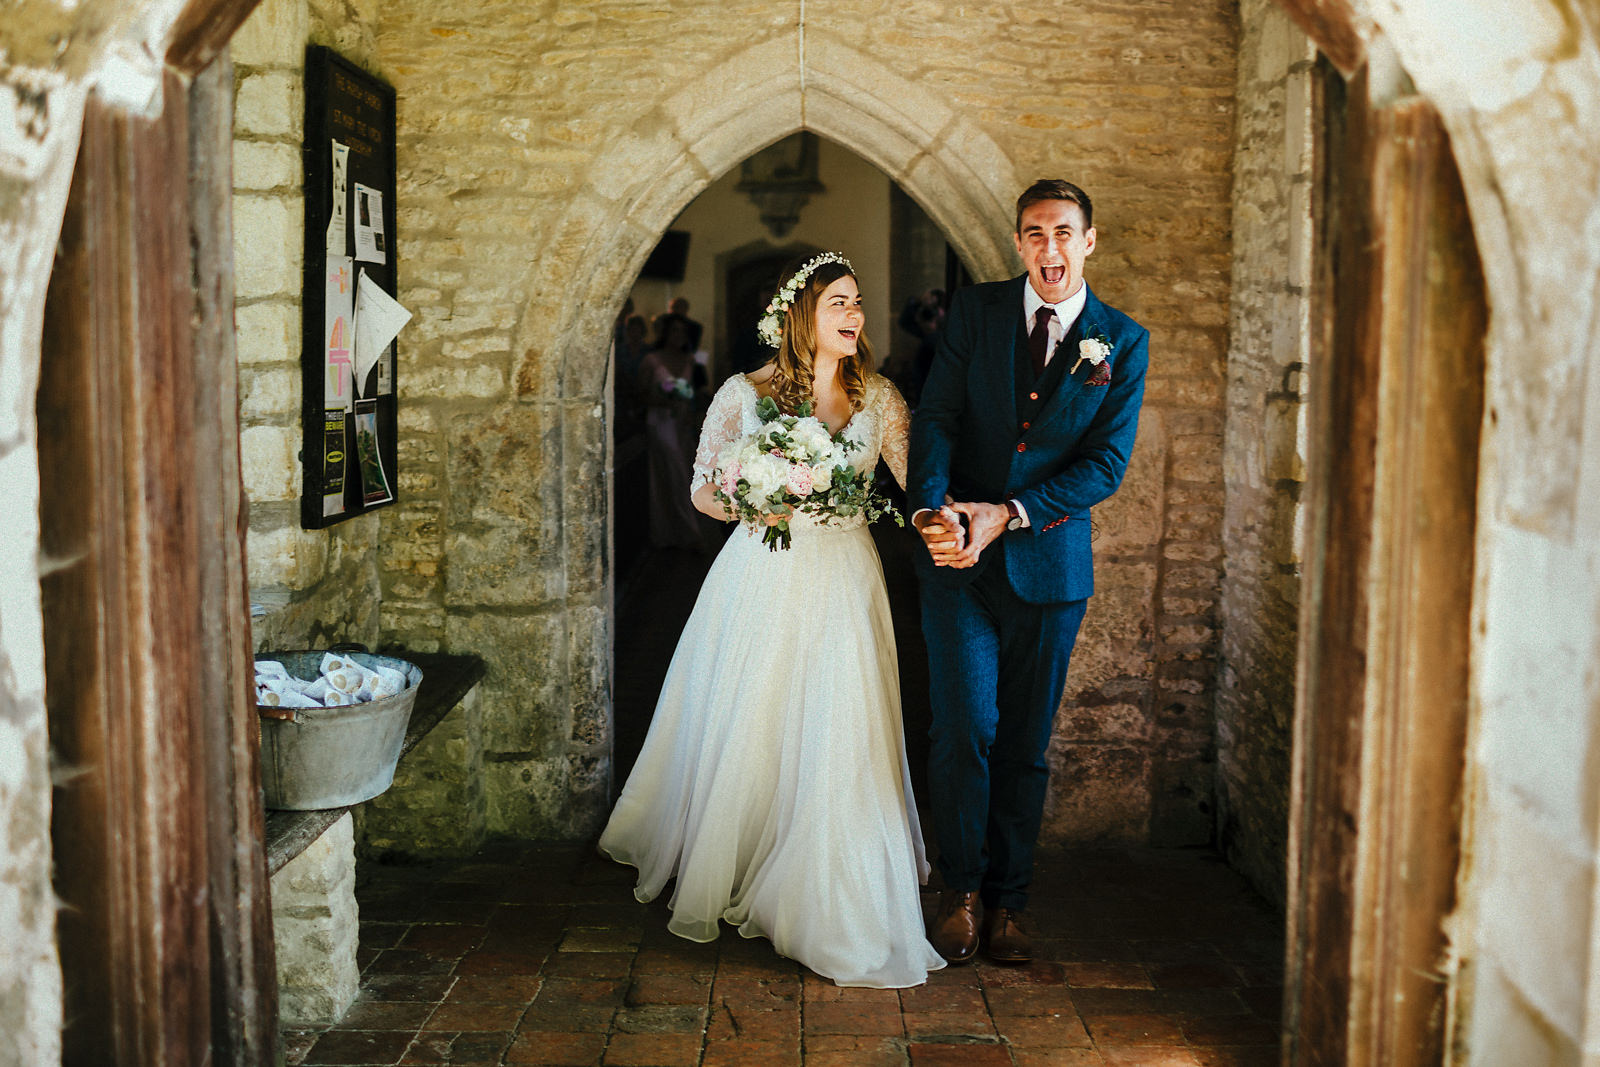 Wedding exit at Haddenham church